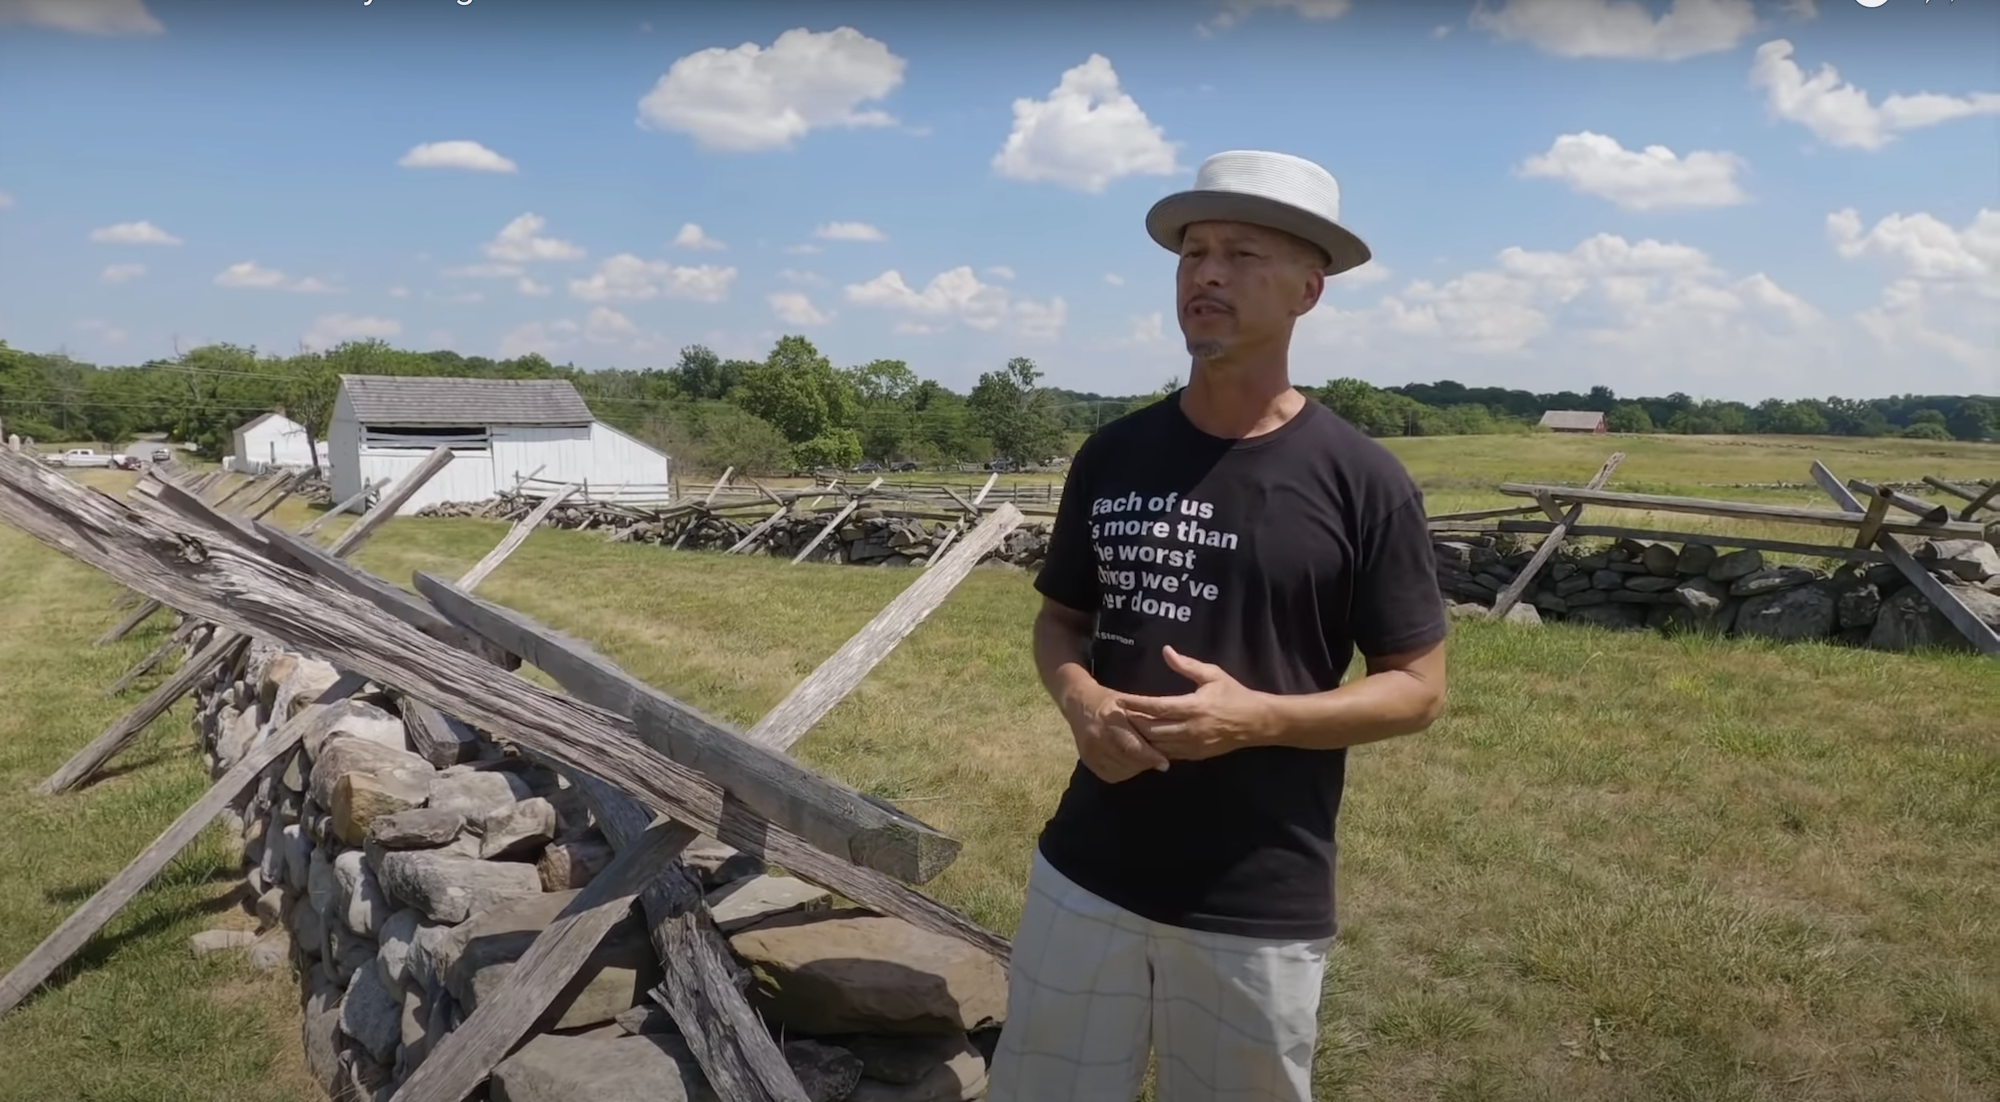 """Scott Hancock speaks at the Gettysburg National Military Park in this still from the upcoming documentary """"Postcards from Babylon: The Church in American Exile."""""""